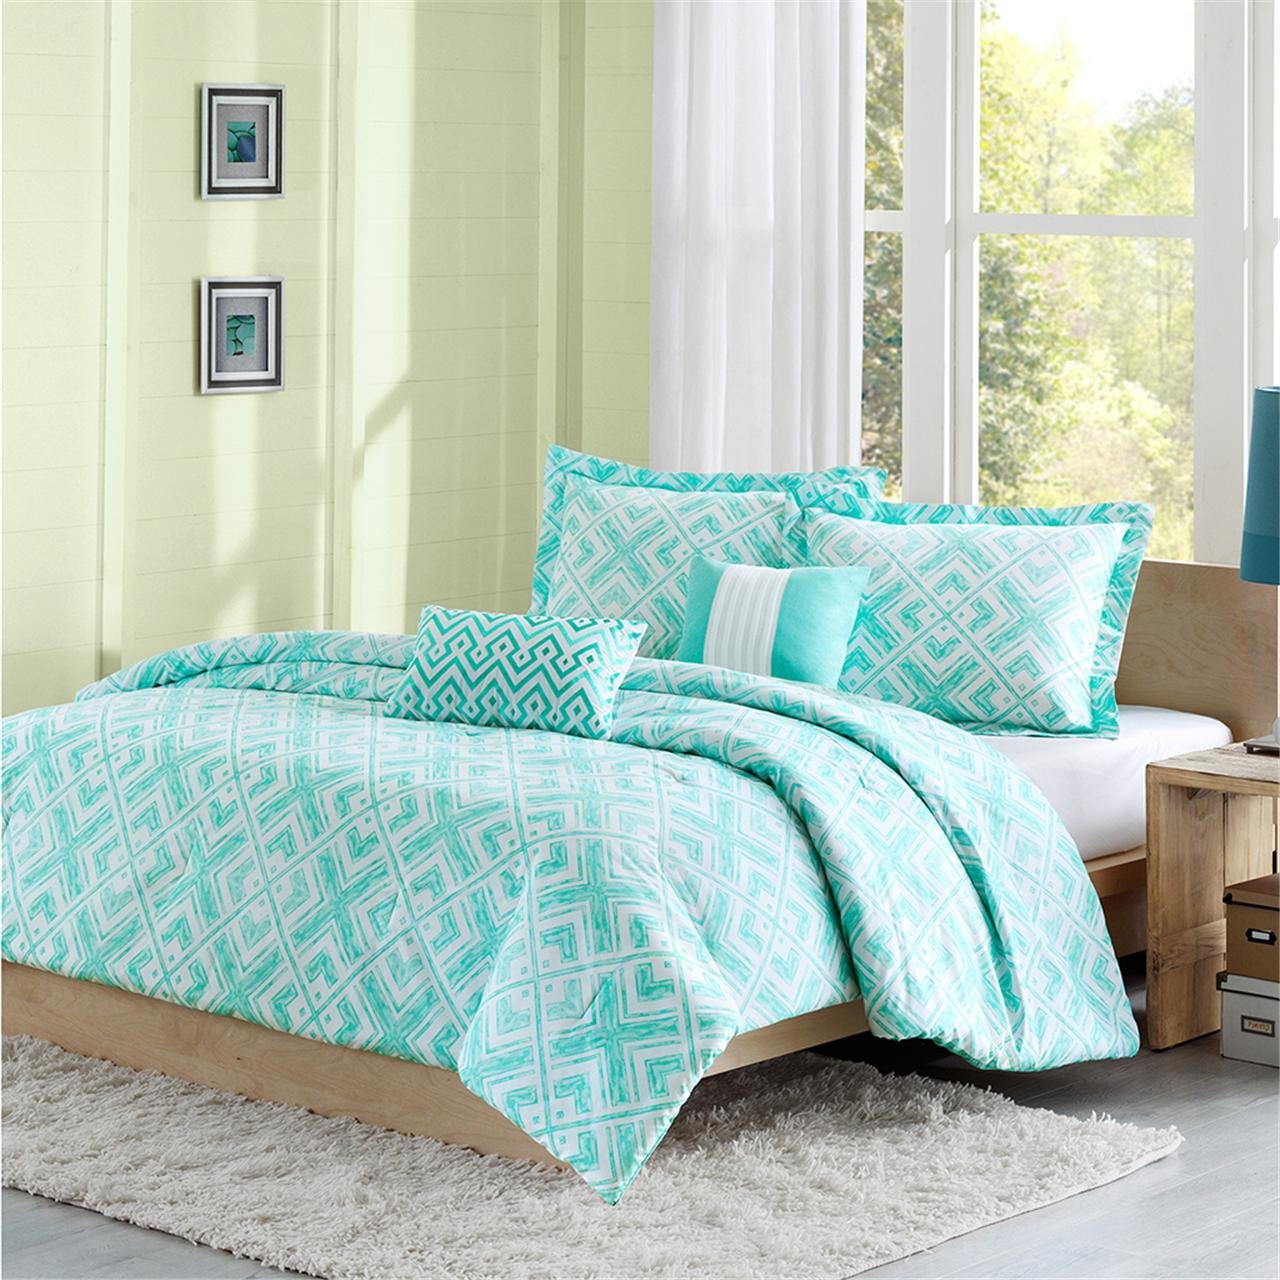 teal color ebay beautiful queen soft light full comforter grey pillows chic blue itm s aqua sets set